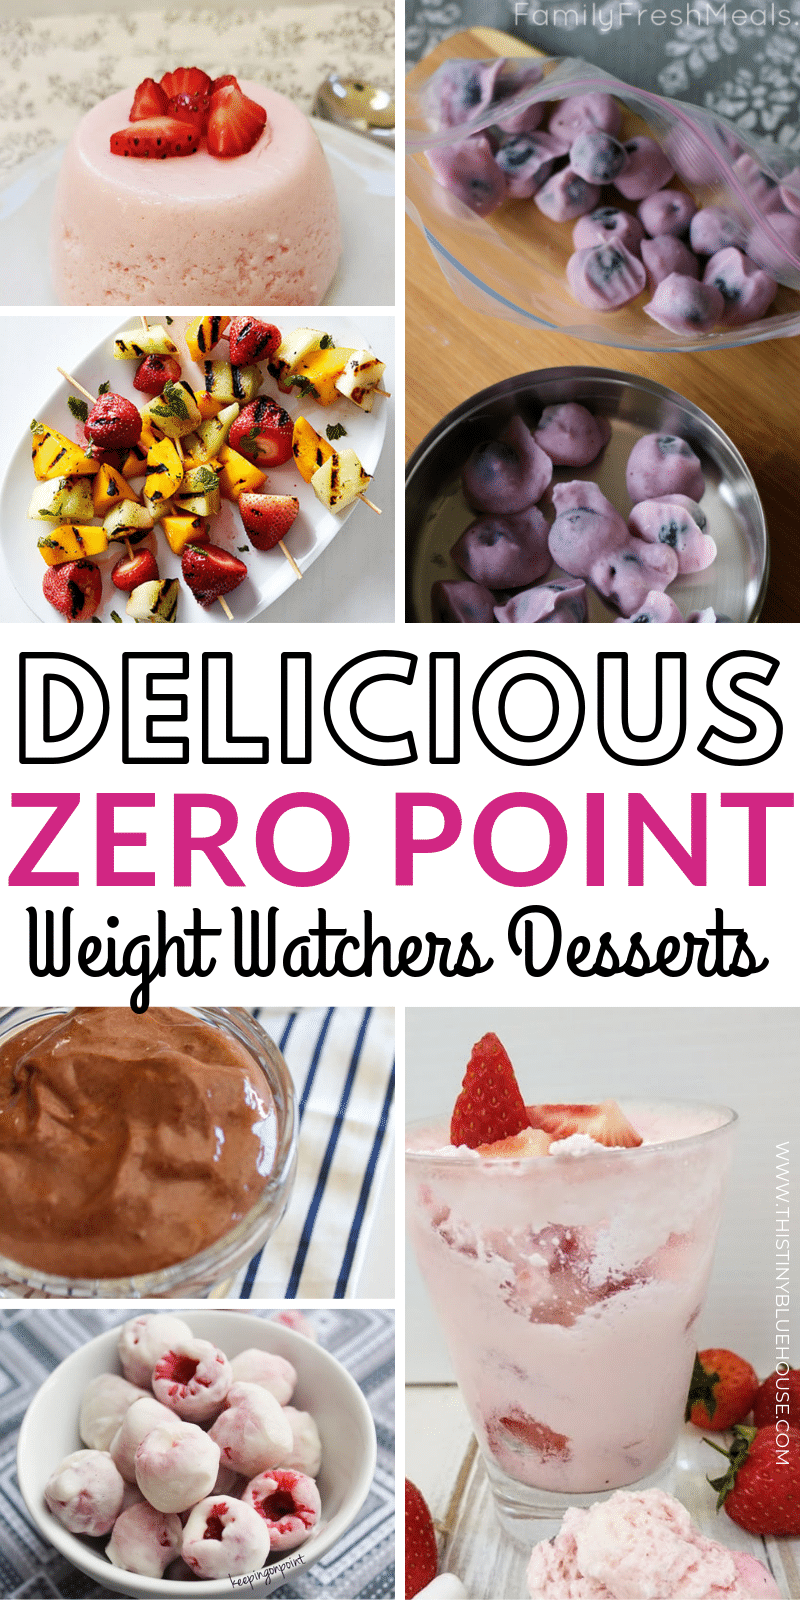 Here are 30 delicious and easy zero point Zero Point Weight Watcher's Desserts that are a perfect way to end a meal or indulge in a guilt free snack. These guilt free Weight Watcher's Dessert ideas are great for anyone using the Weight Watchers program. #weightwatchers #weightwatchersdesserts #zeropointsweightwatchers #zeropointweightwatchersdesserts #zeropointweightwatchersfood #weightwatchersforfree #zeropointweightwatcherstreats